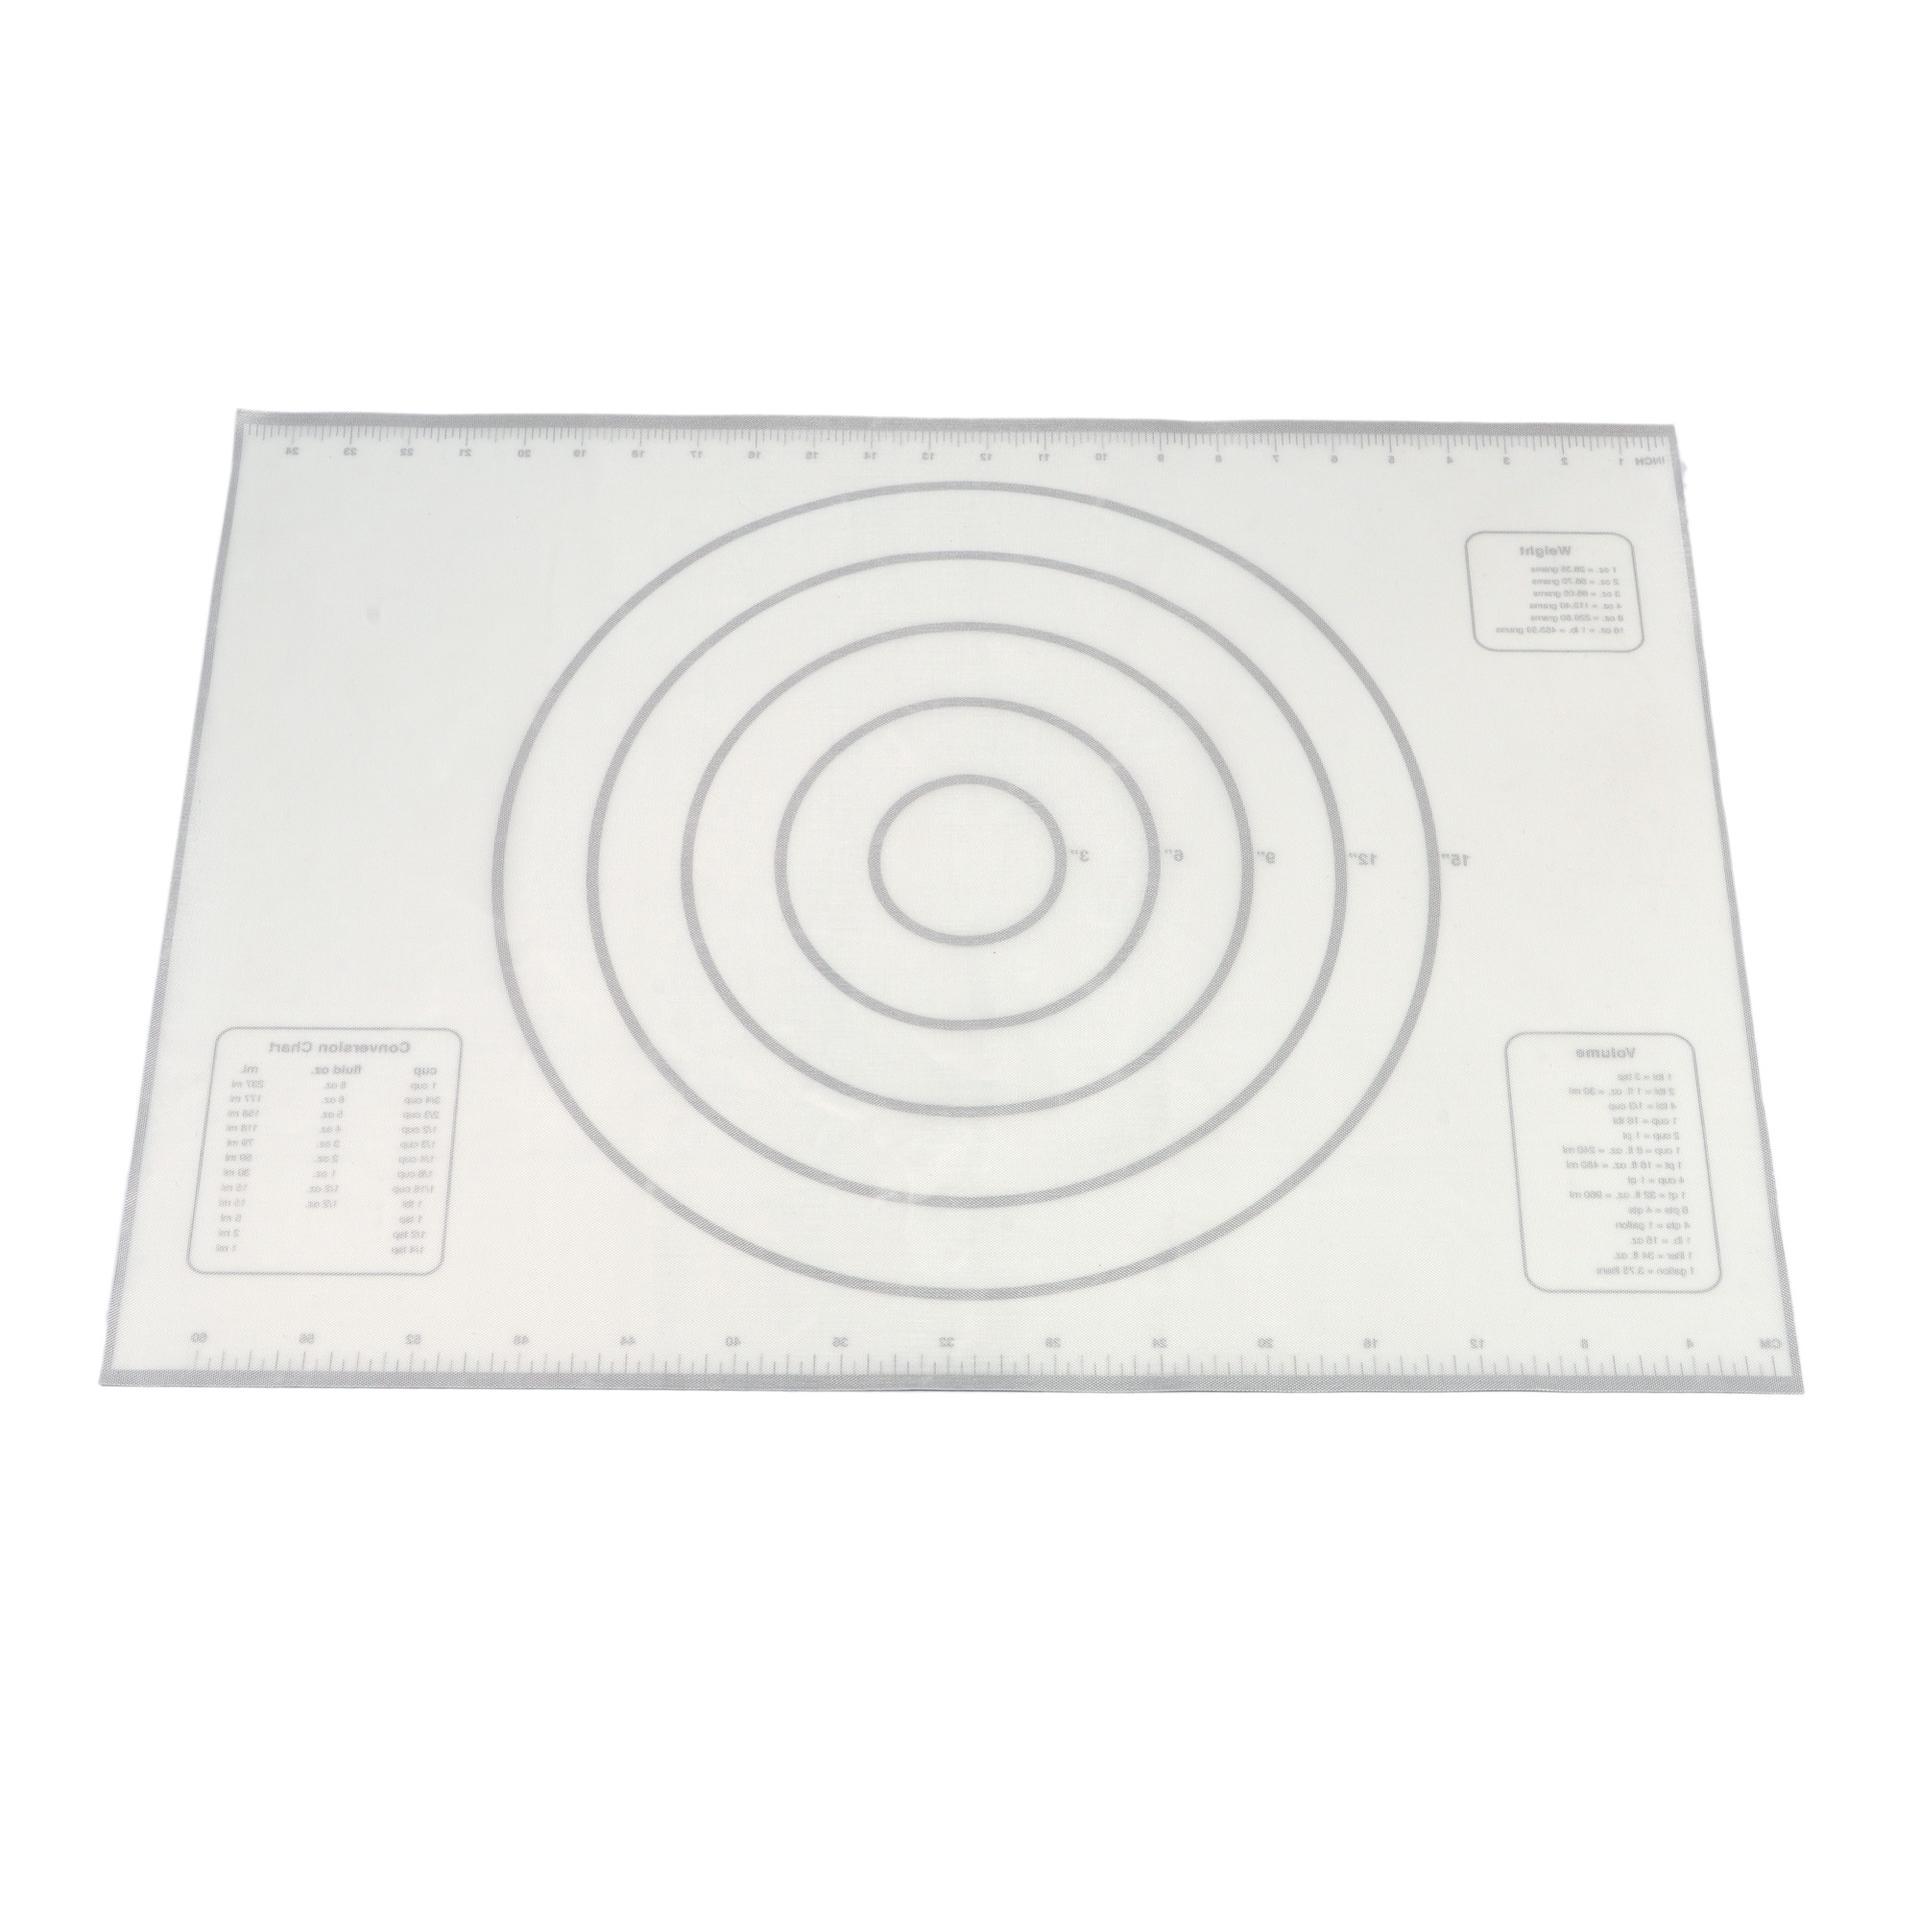 Sedex factory tick mark check silicone glass fibre mat for baking